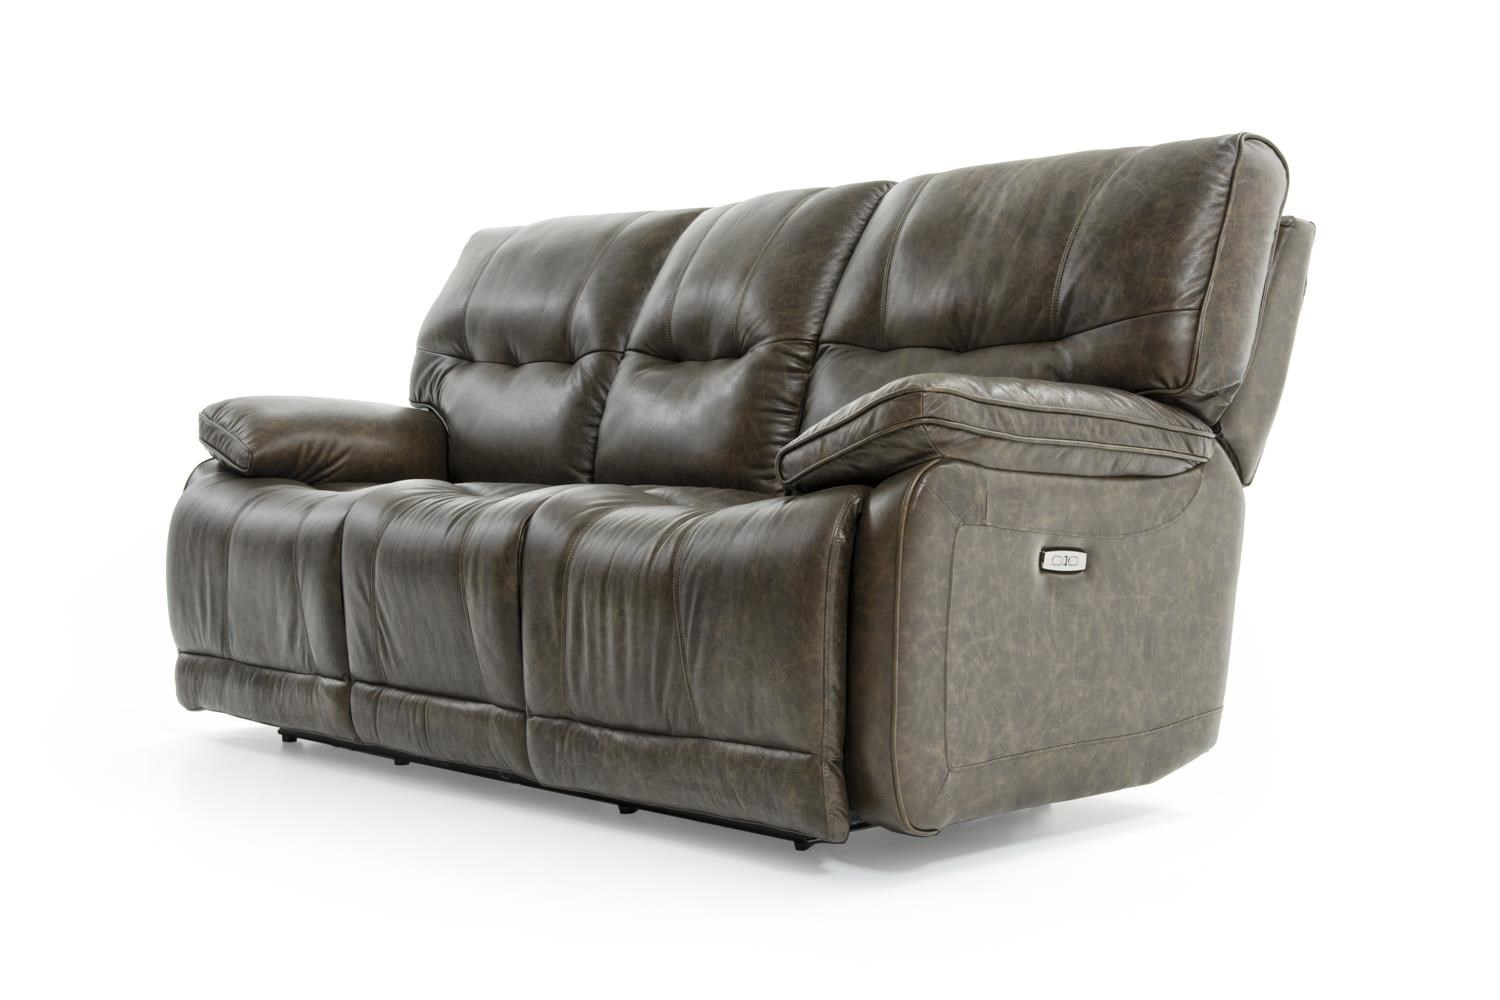 Admirable Dania Leather Sofa Dania Leather Sofas Gregata Leather From Gmtry Best Dining Table And Chair Ideas Images Gmtryco